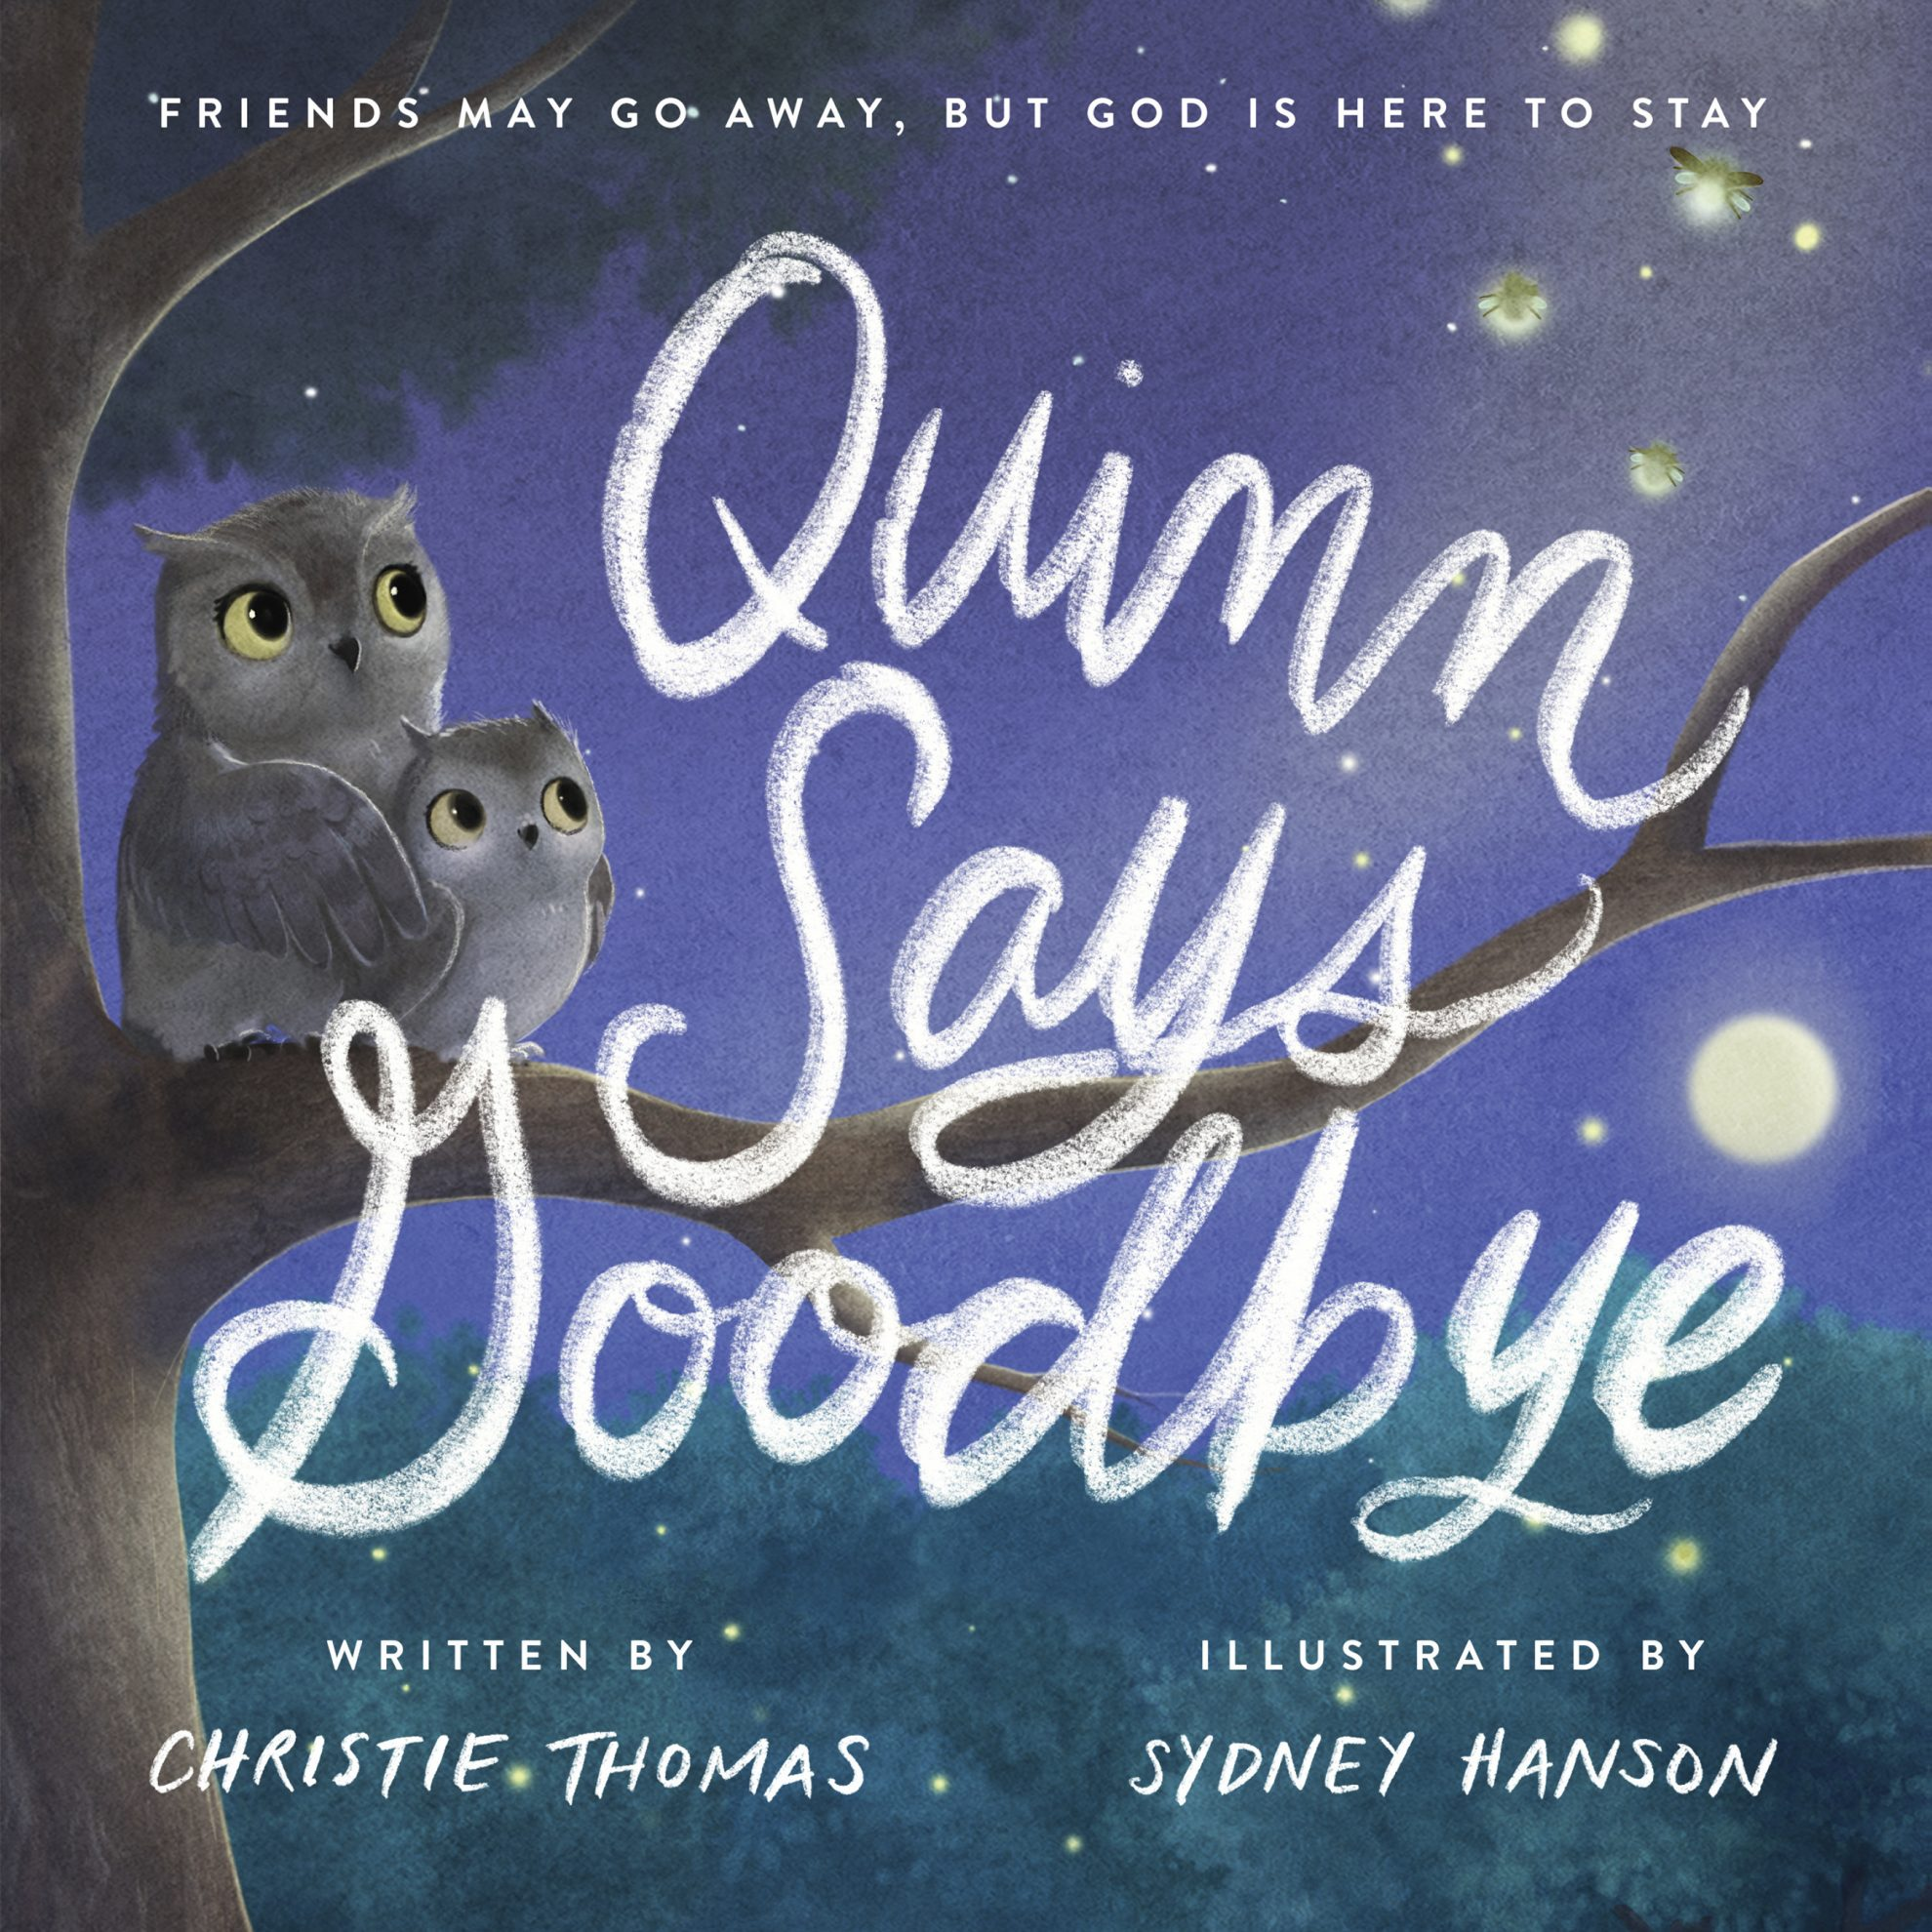 Quinn says goodbye: front cover